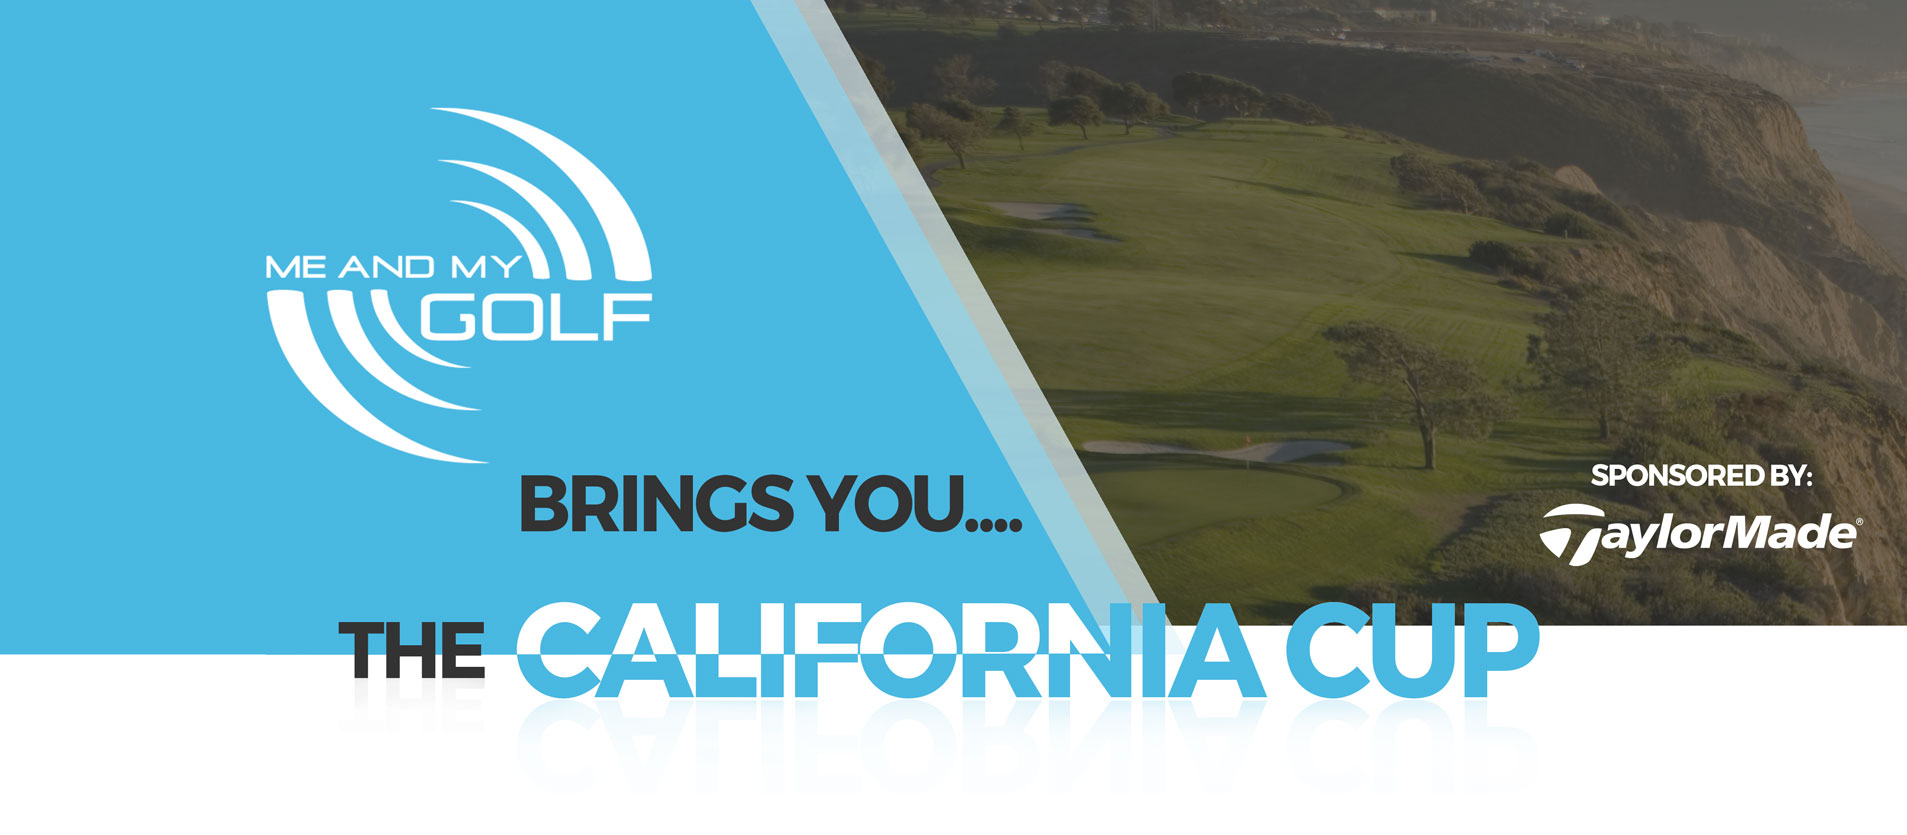 California Cup TaylorMade Golf